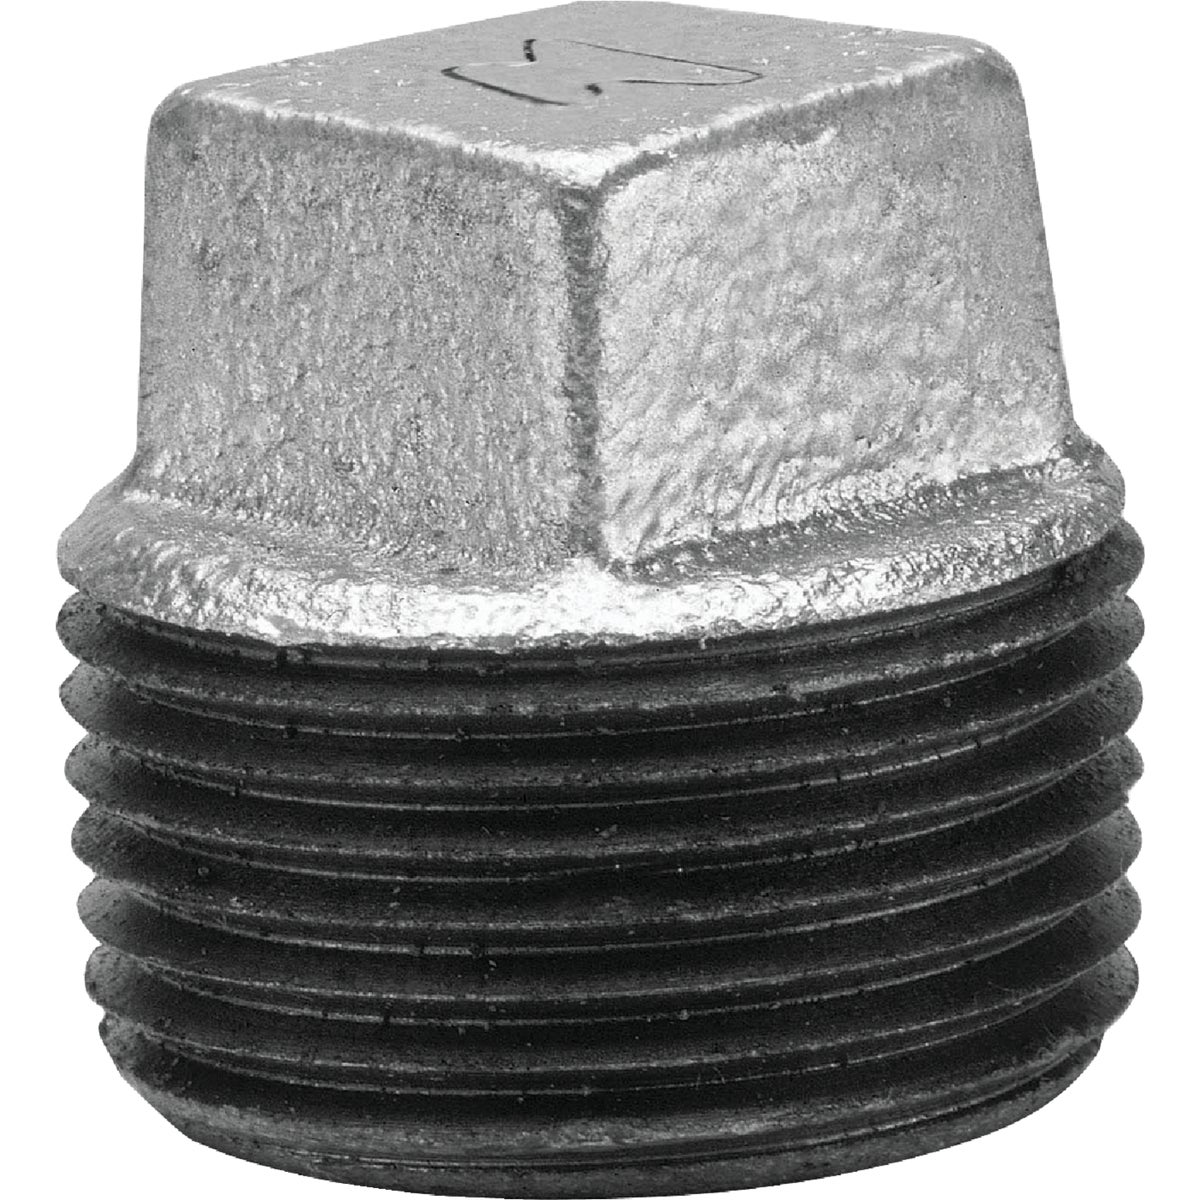 "1-1/2"" GALV SQ PLUG - 8700160057 by Anvil International"